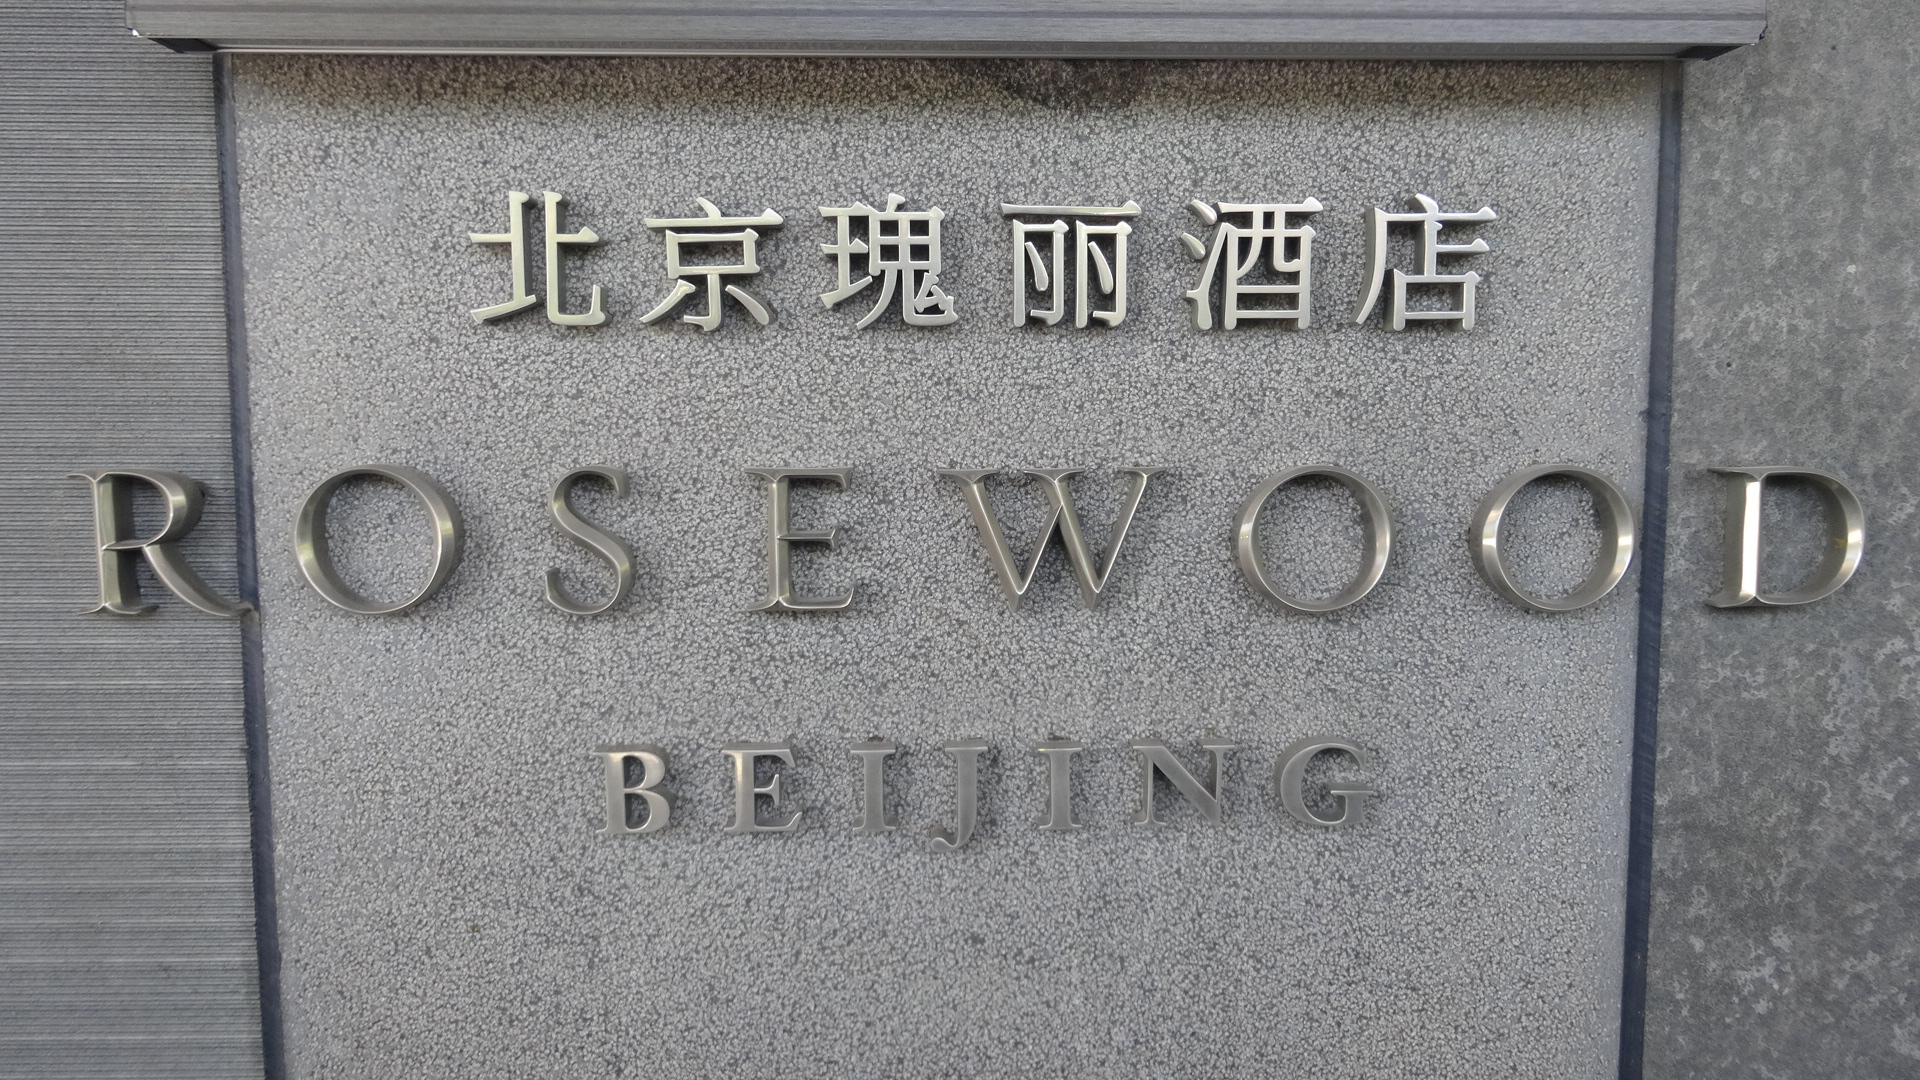 rosewood hotel